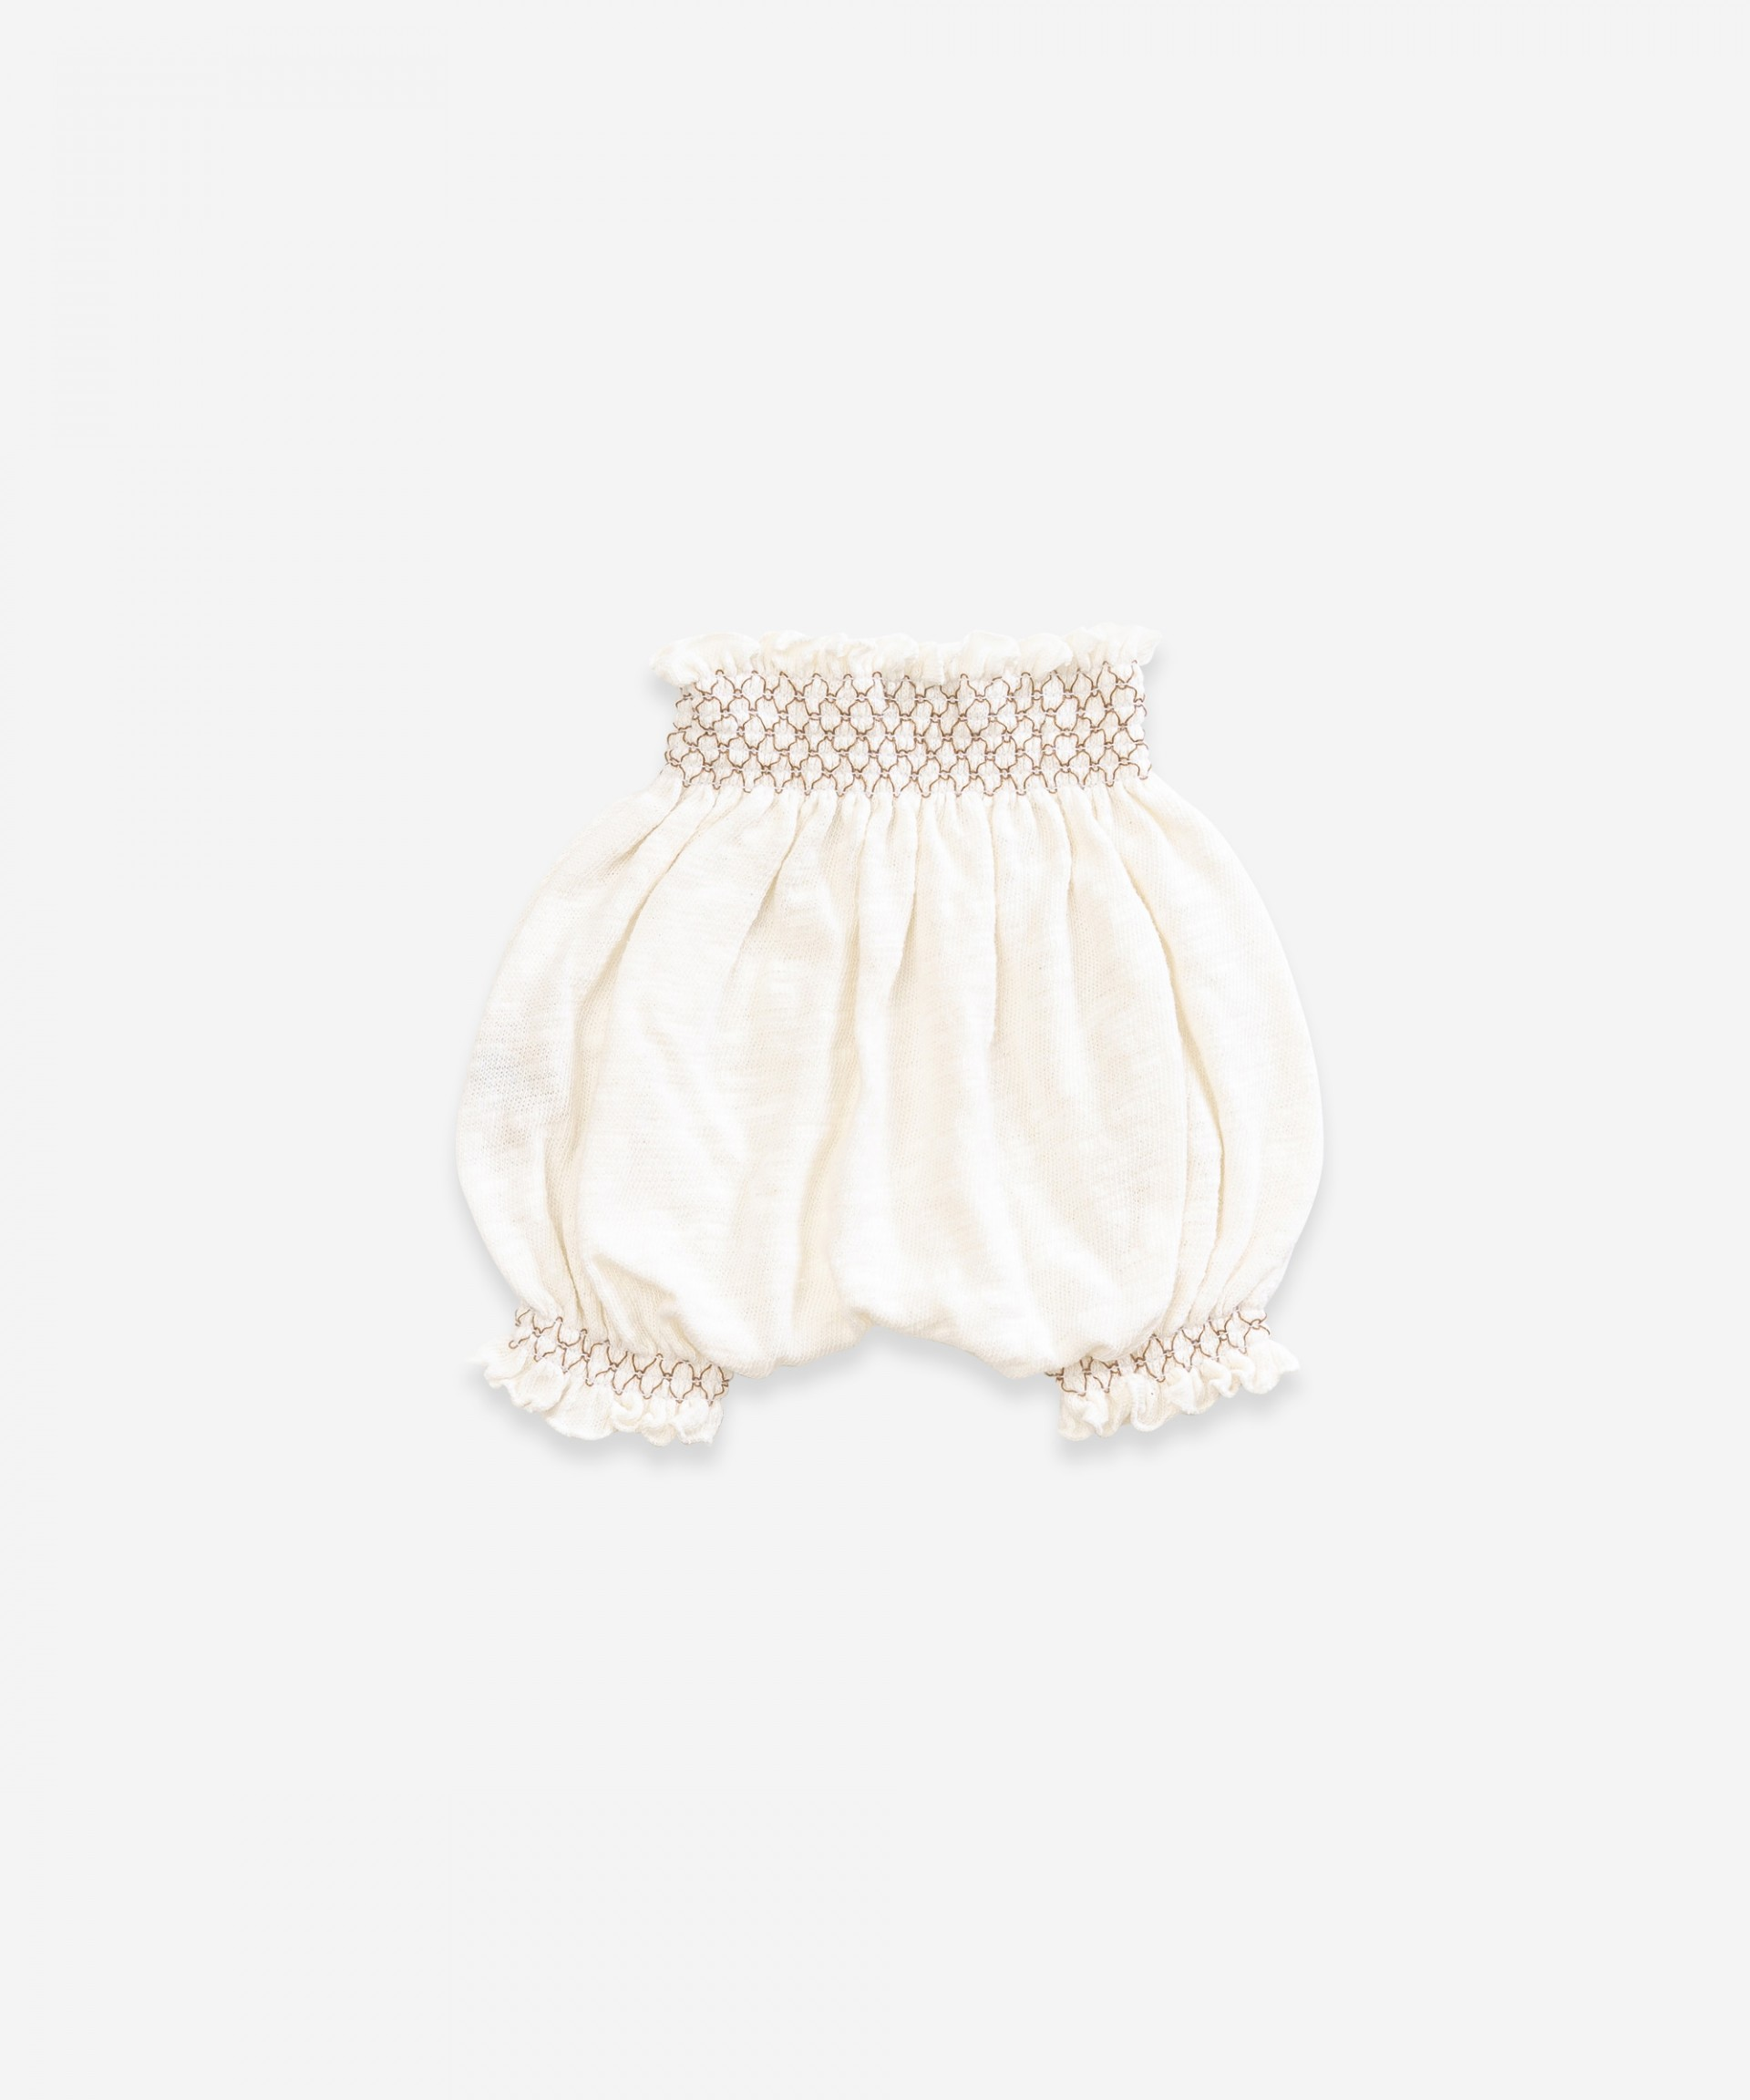 Cotton shorts |Weaving